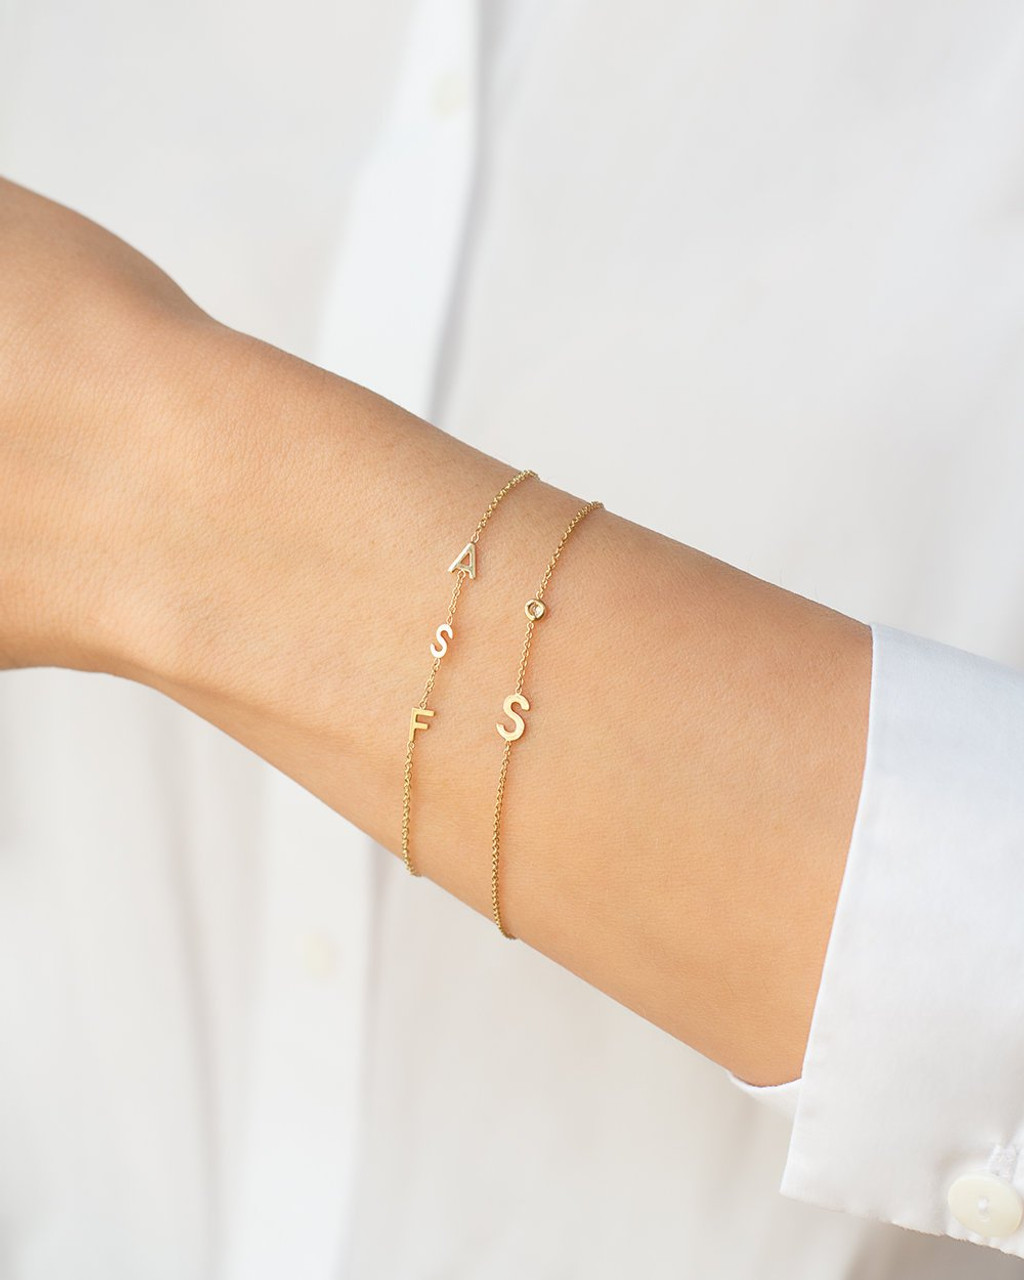 14k Gold Multiple Initials Bracelet